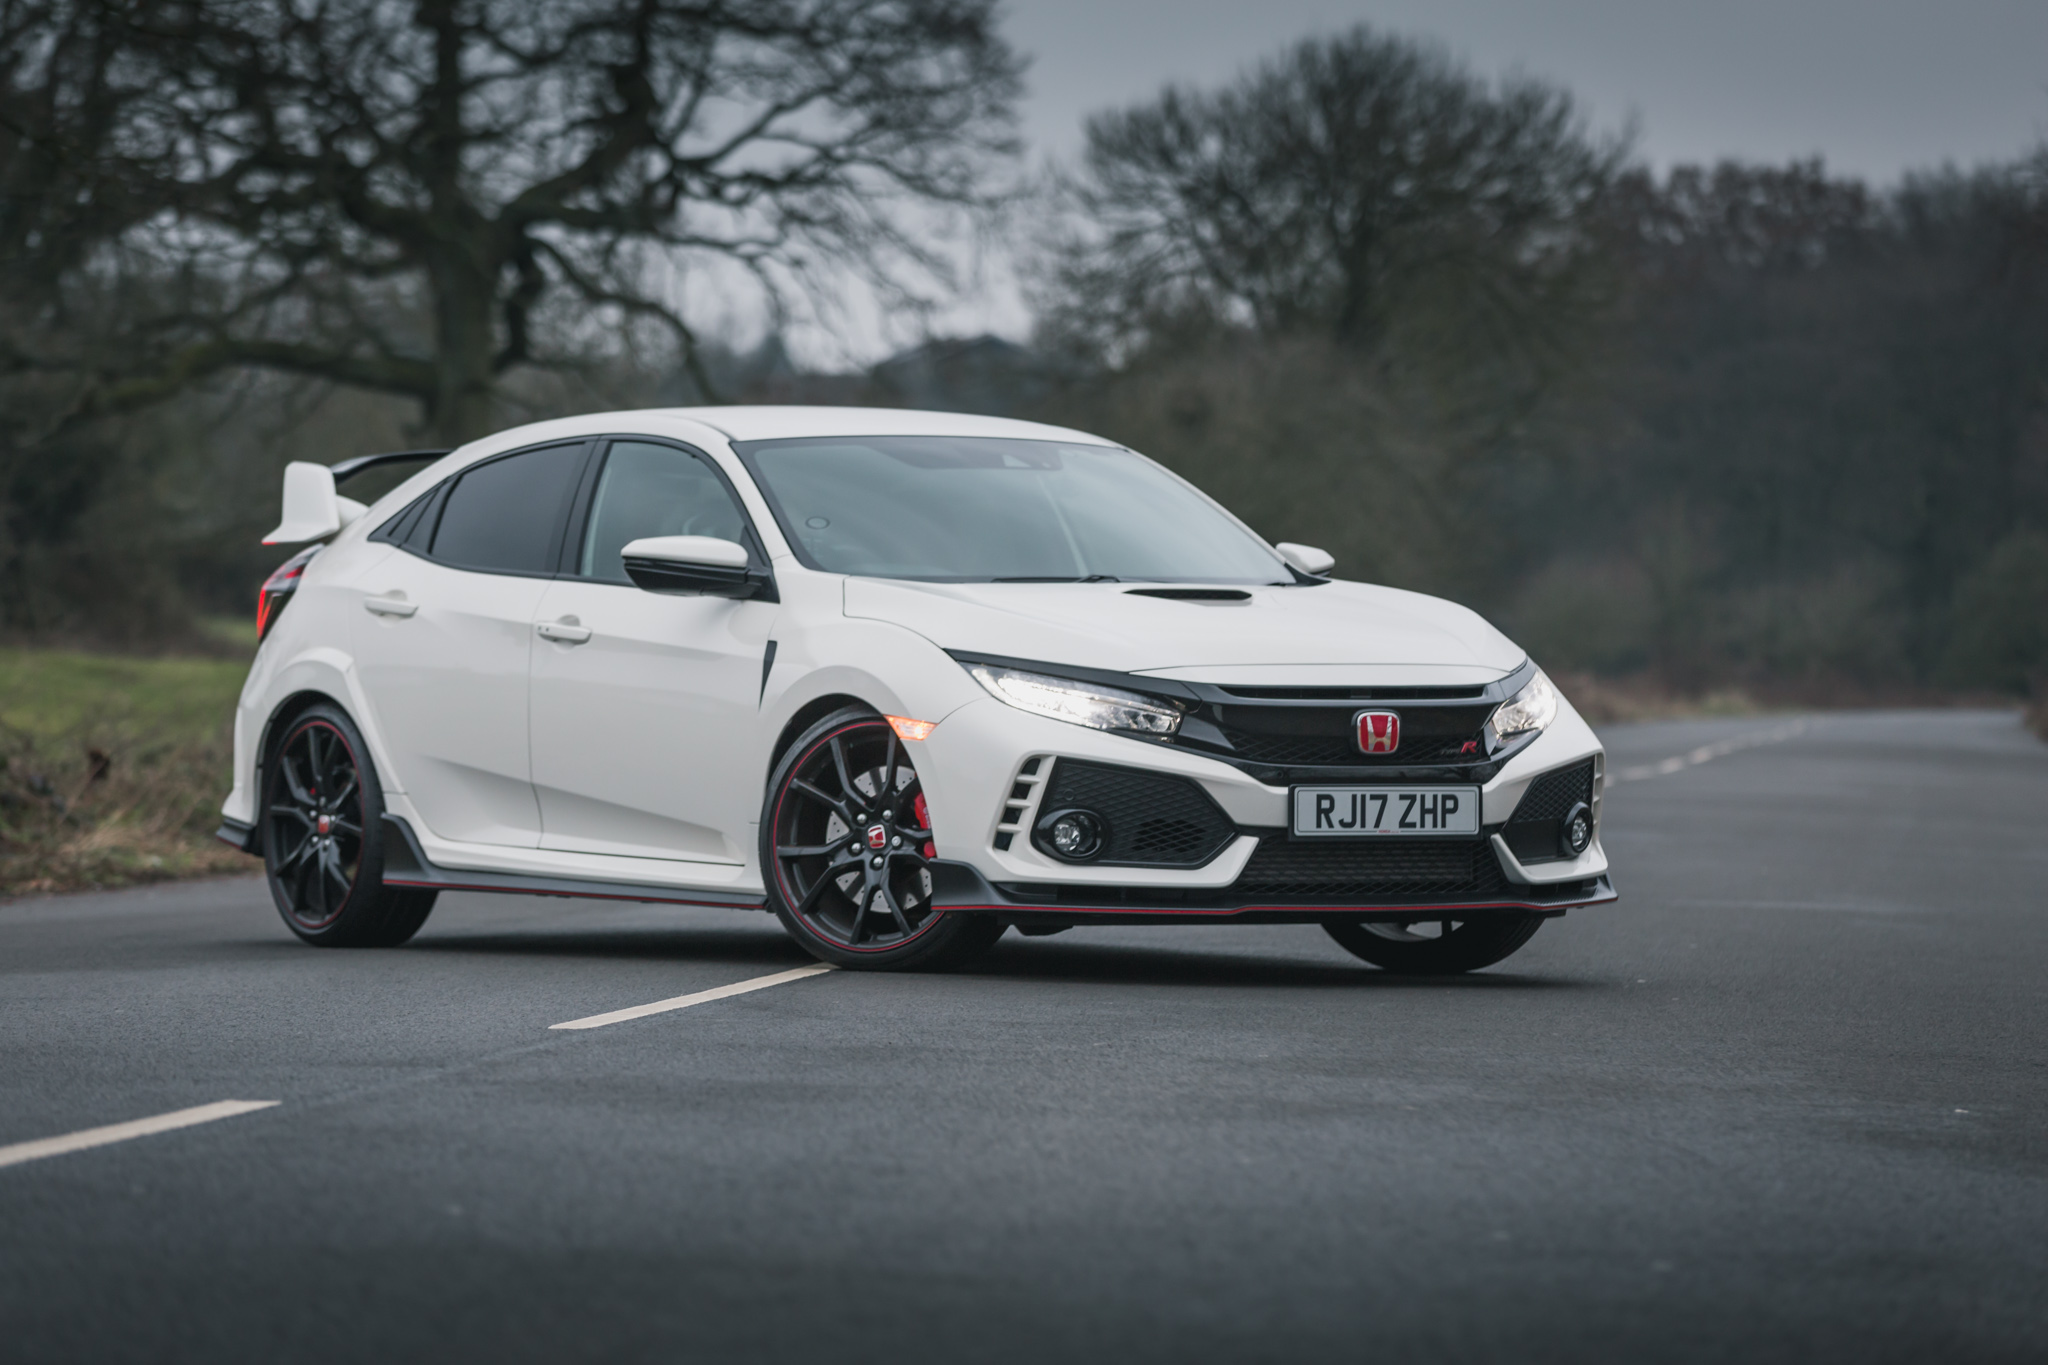 honda civic type r fk8 review 2018 0 60mph in 5 8 secs 169mph. Black Bedroom Furniture Sets. Home Design Ideas